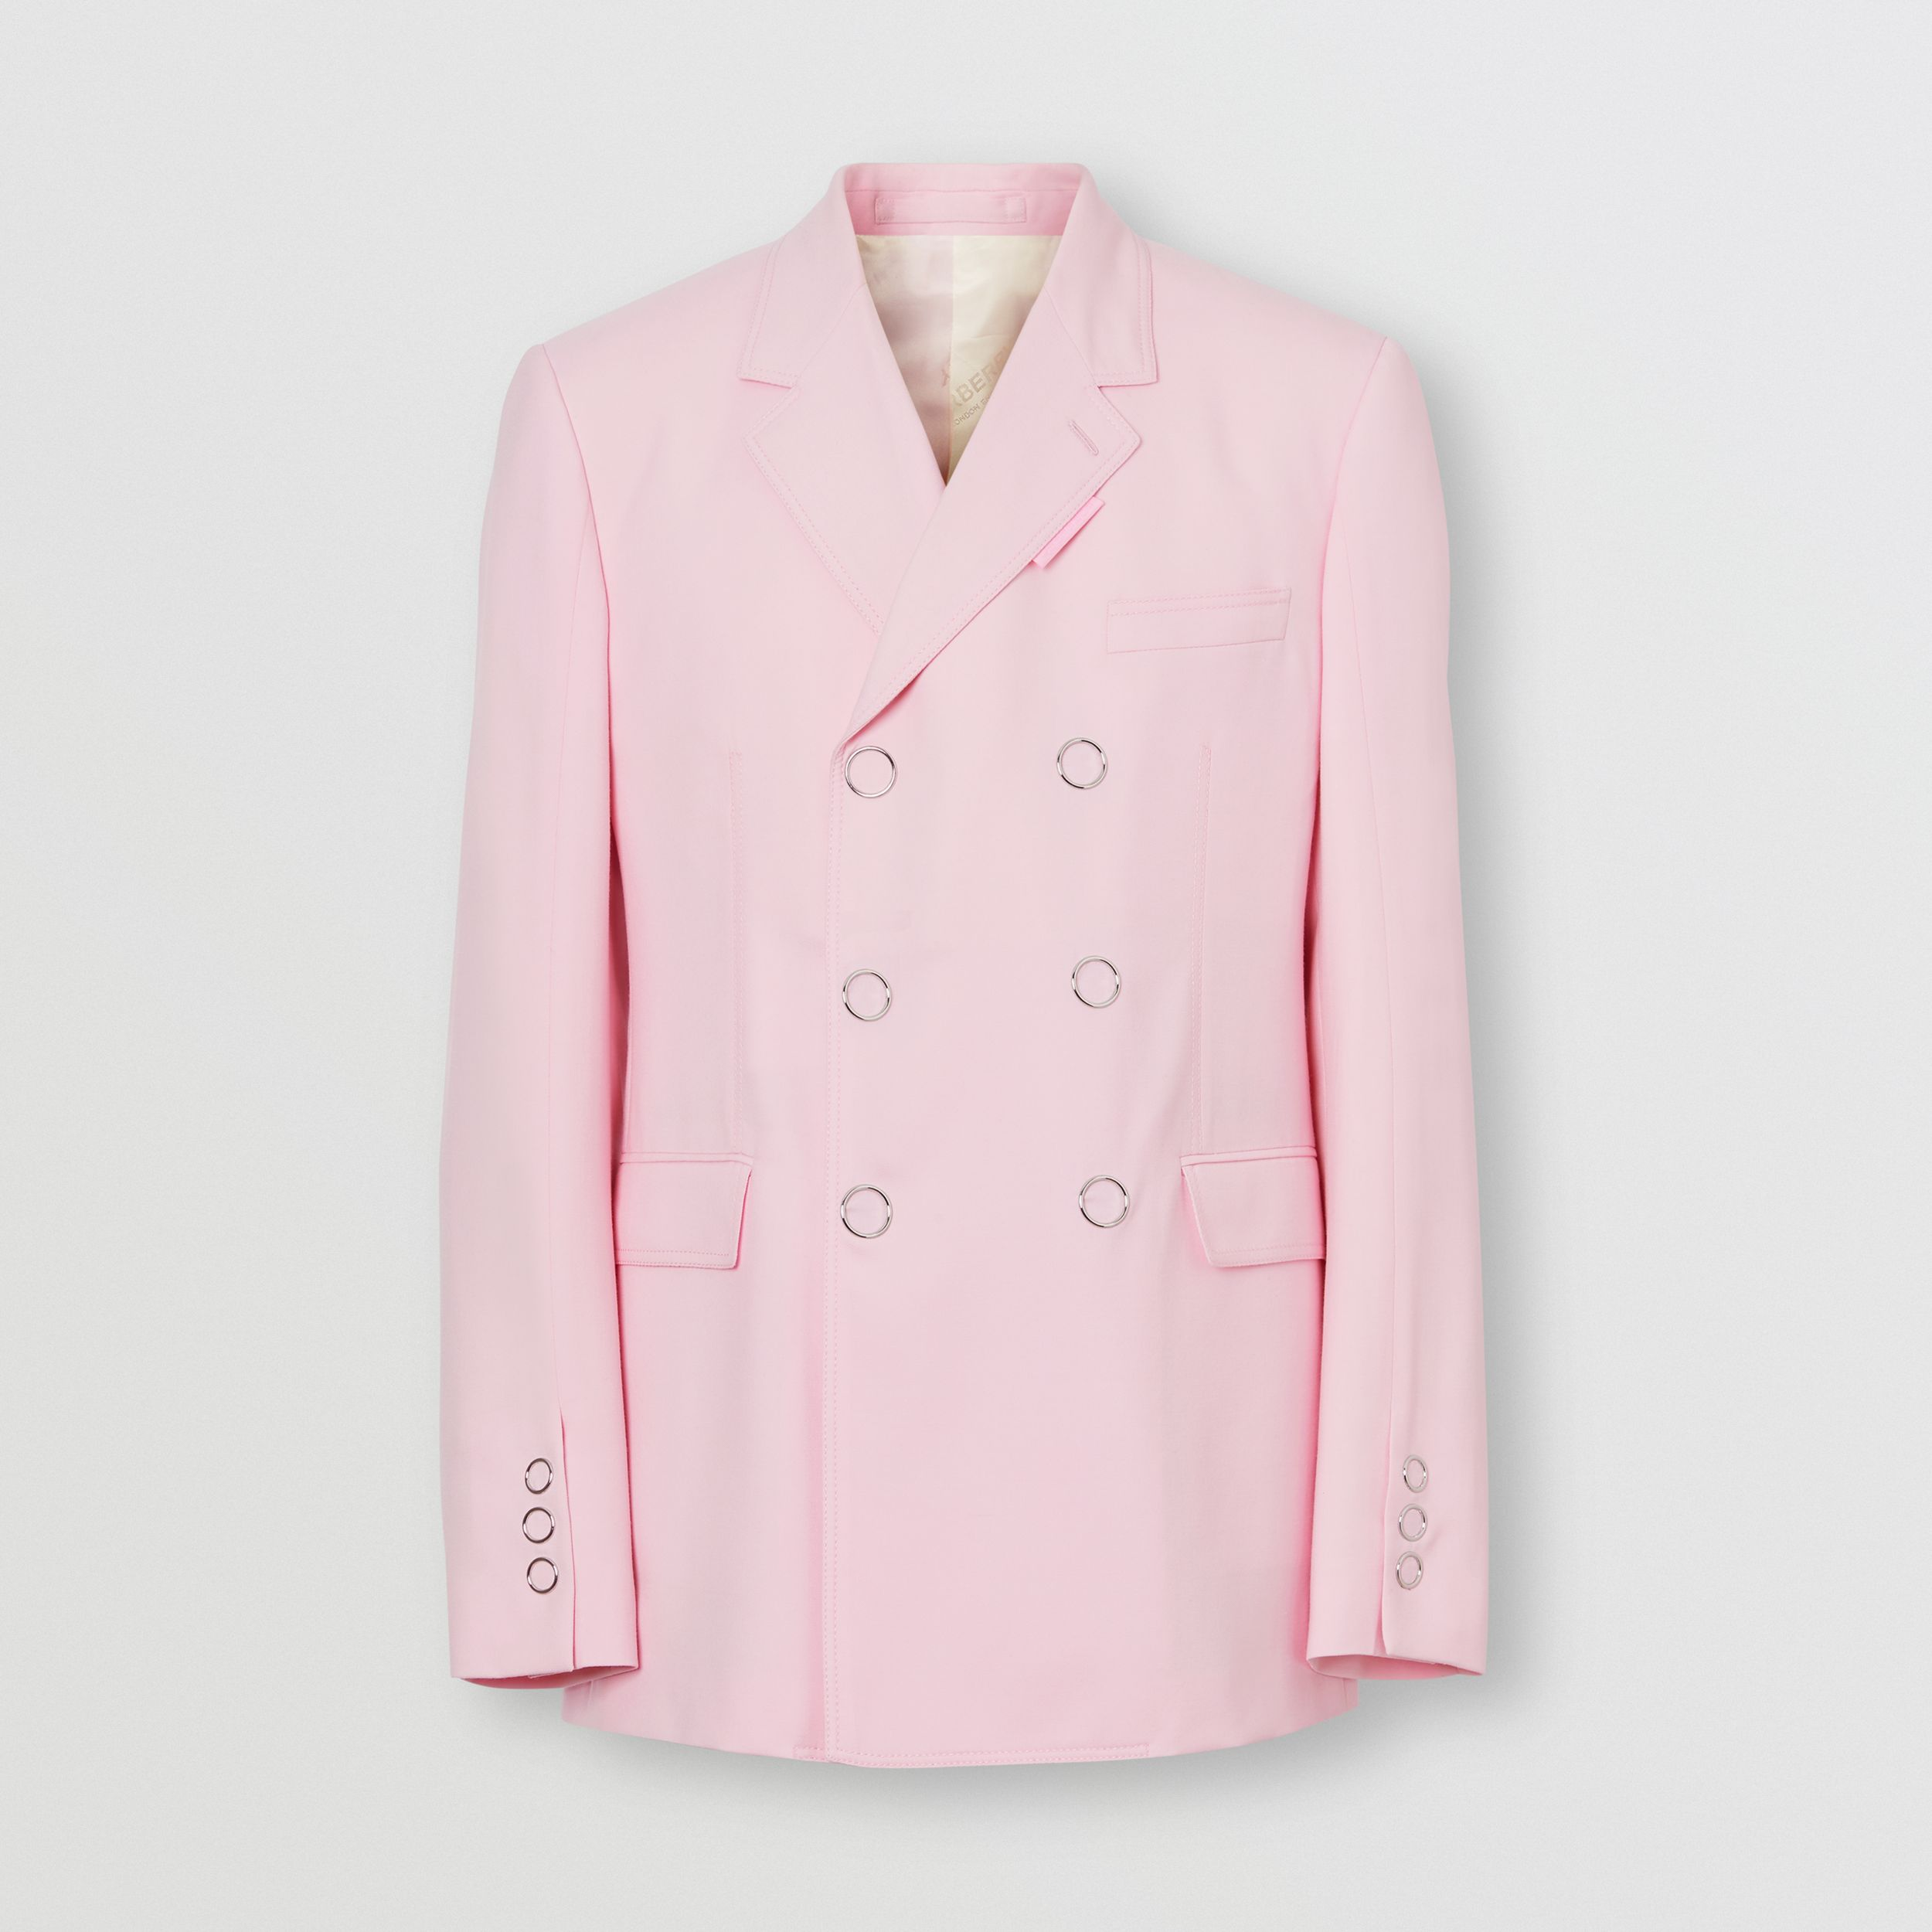 Slim Fit Press-stud Tumbled Wool Tailored Jacket in Candy Pink - Men | Burberry - 4